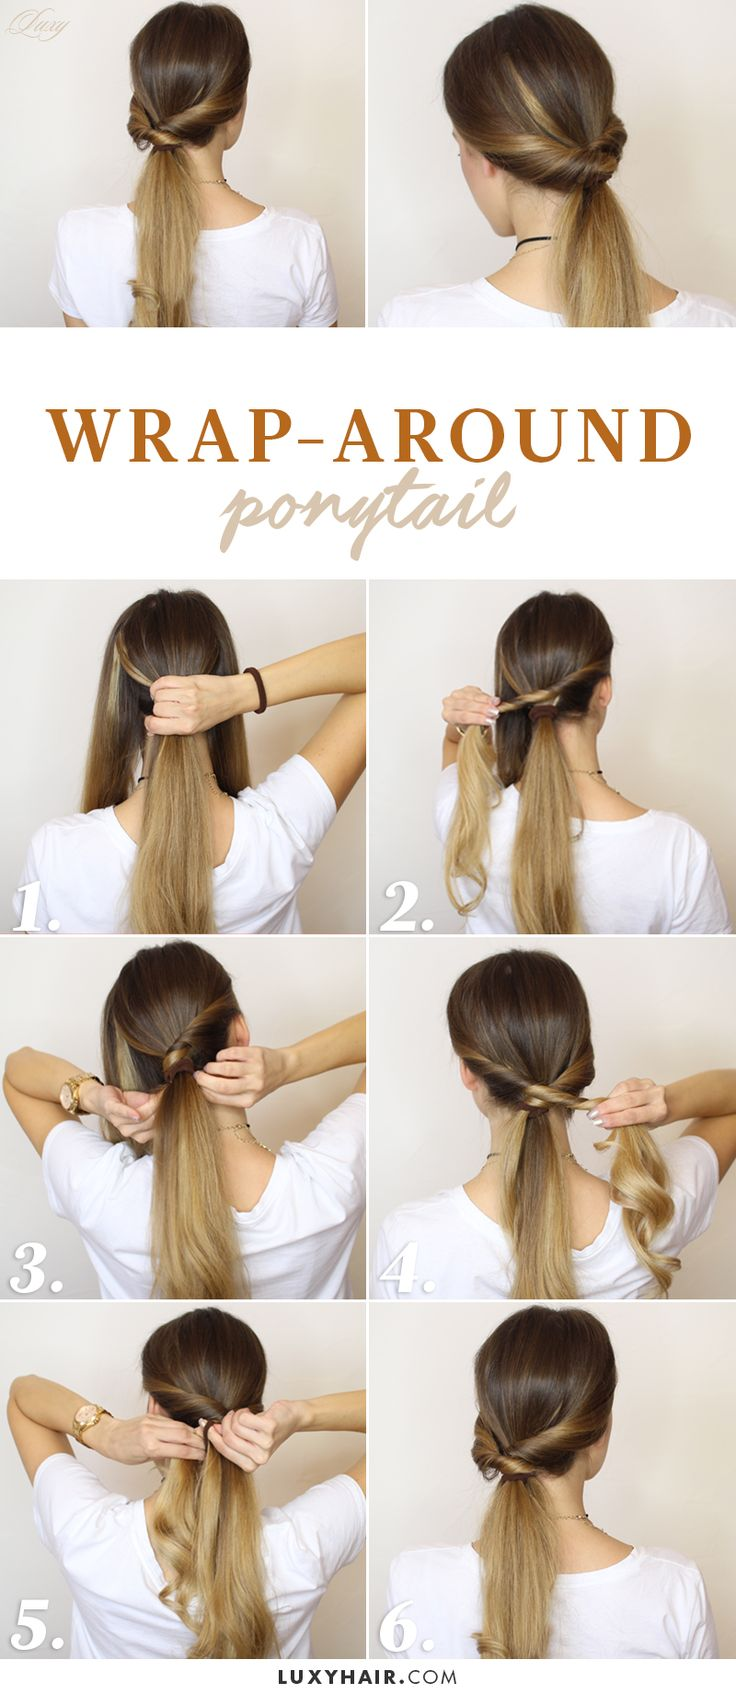 Hairstyle Tutorials Custom 375 Best Hair Tutorials & How To Images On Pinterest